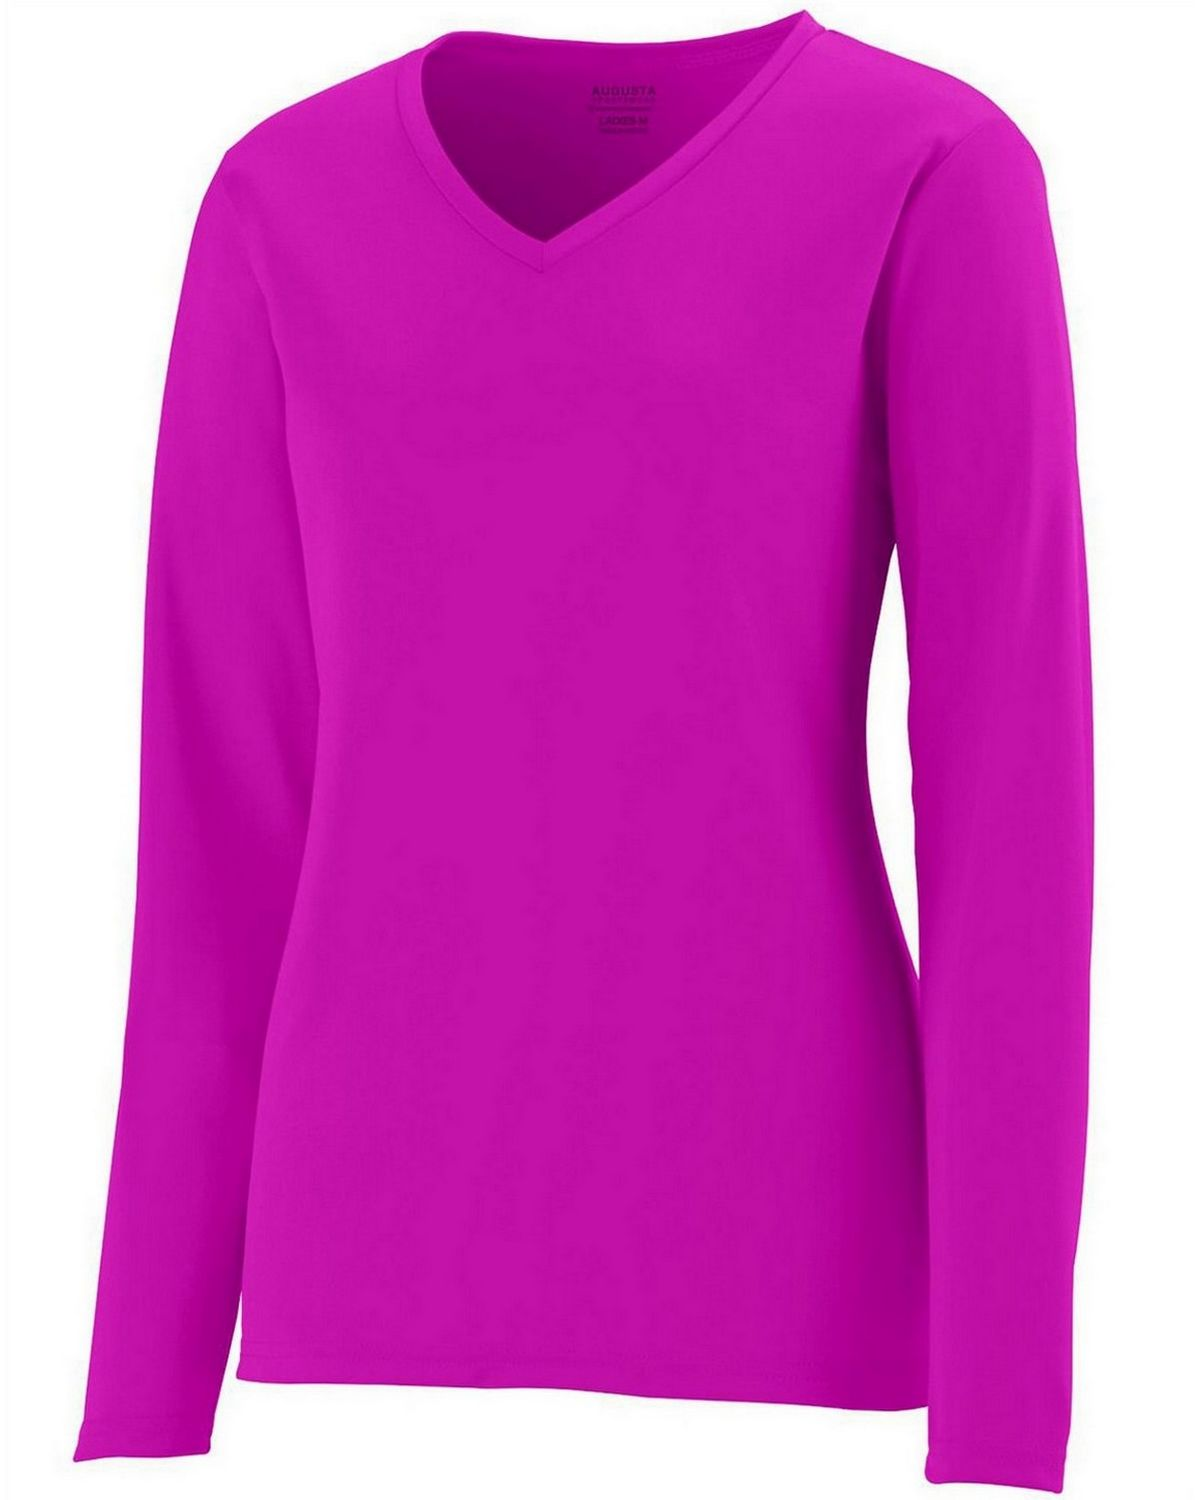 Augusta Sportswear 1789 Long-Sleeve Jersey - Power Pink - L 1789